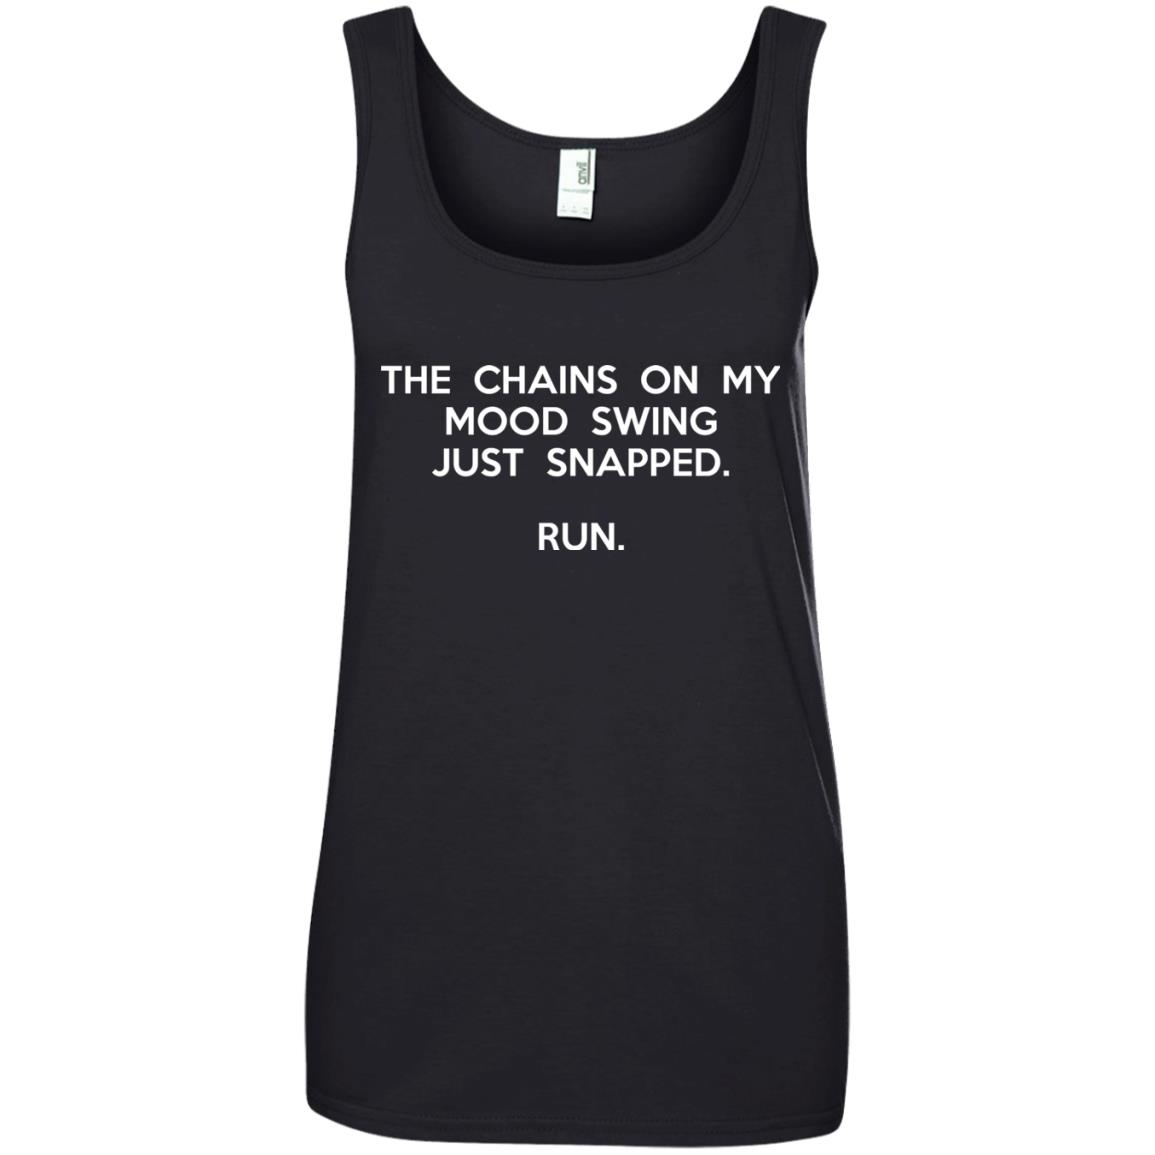 image 2945 - The chains on my mood swing just snapped shirt